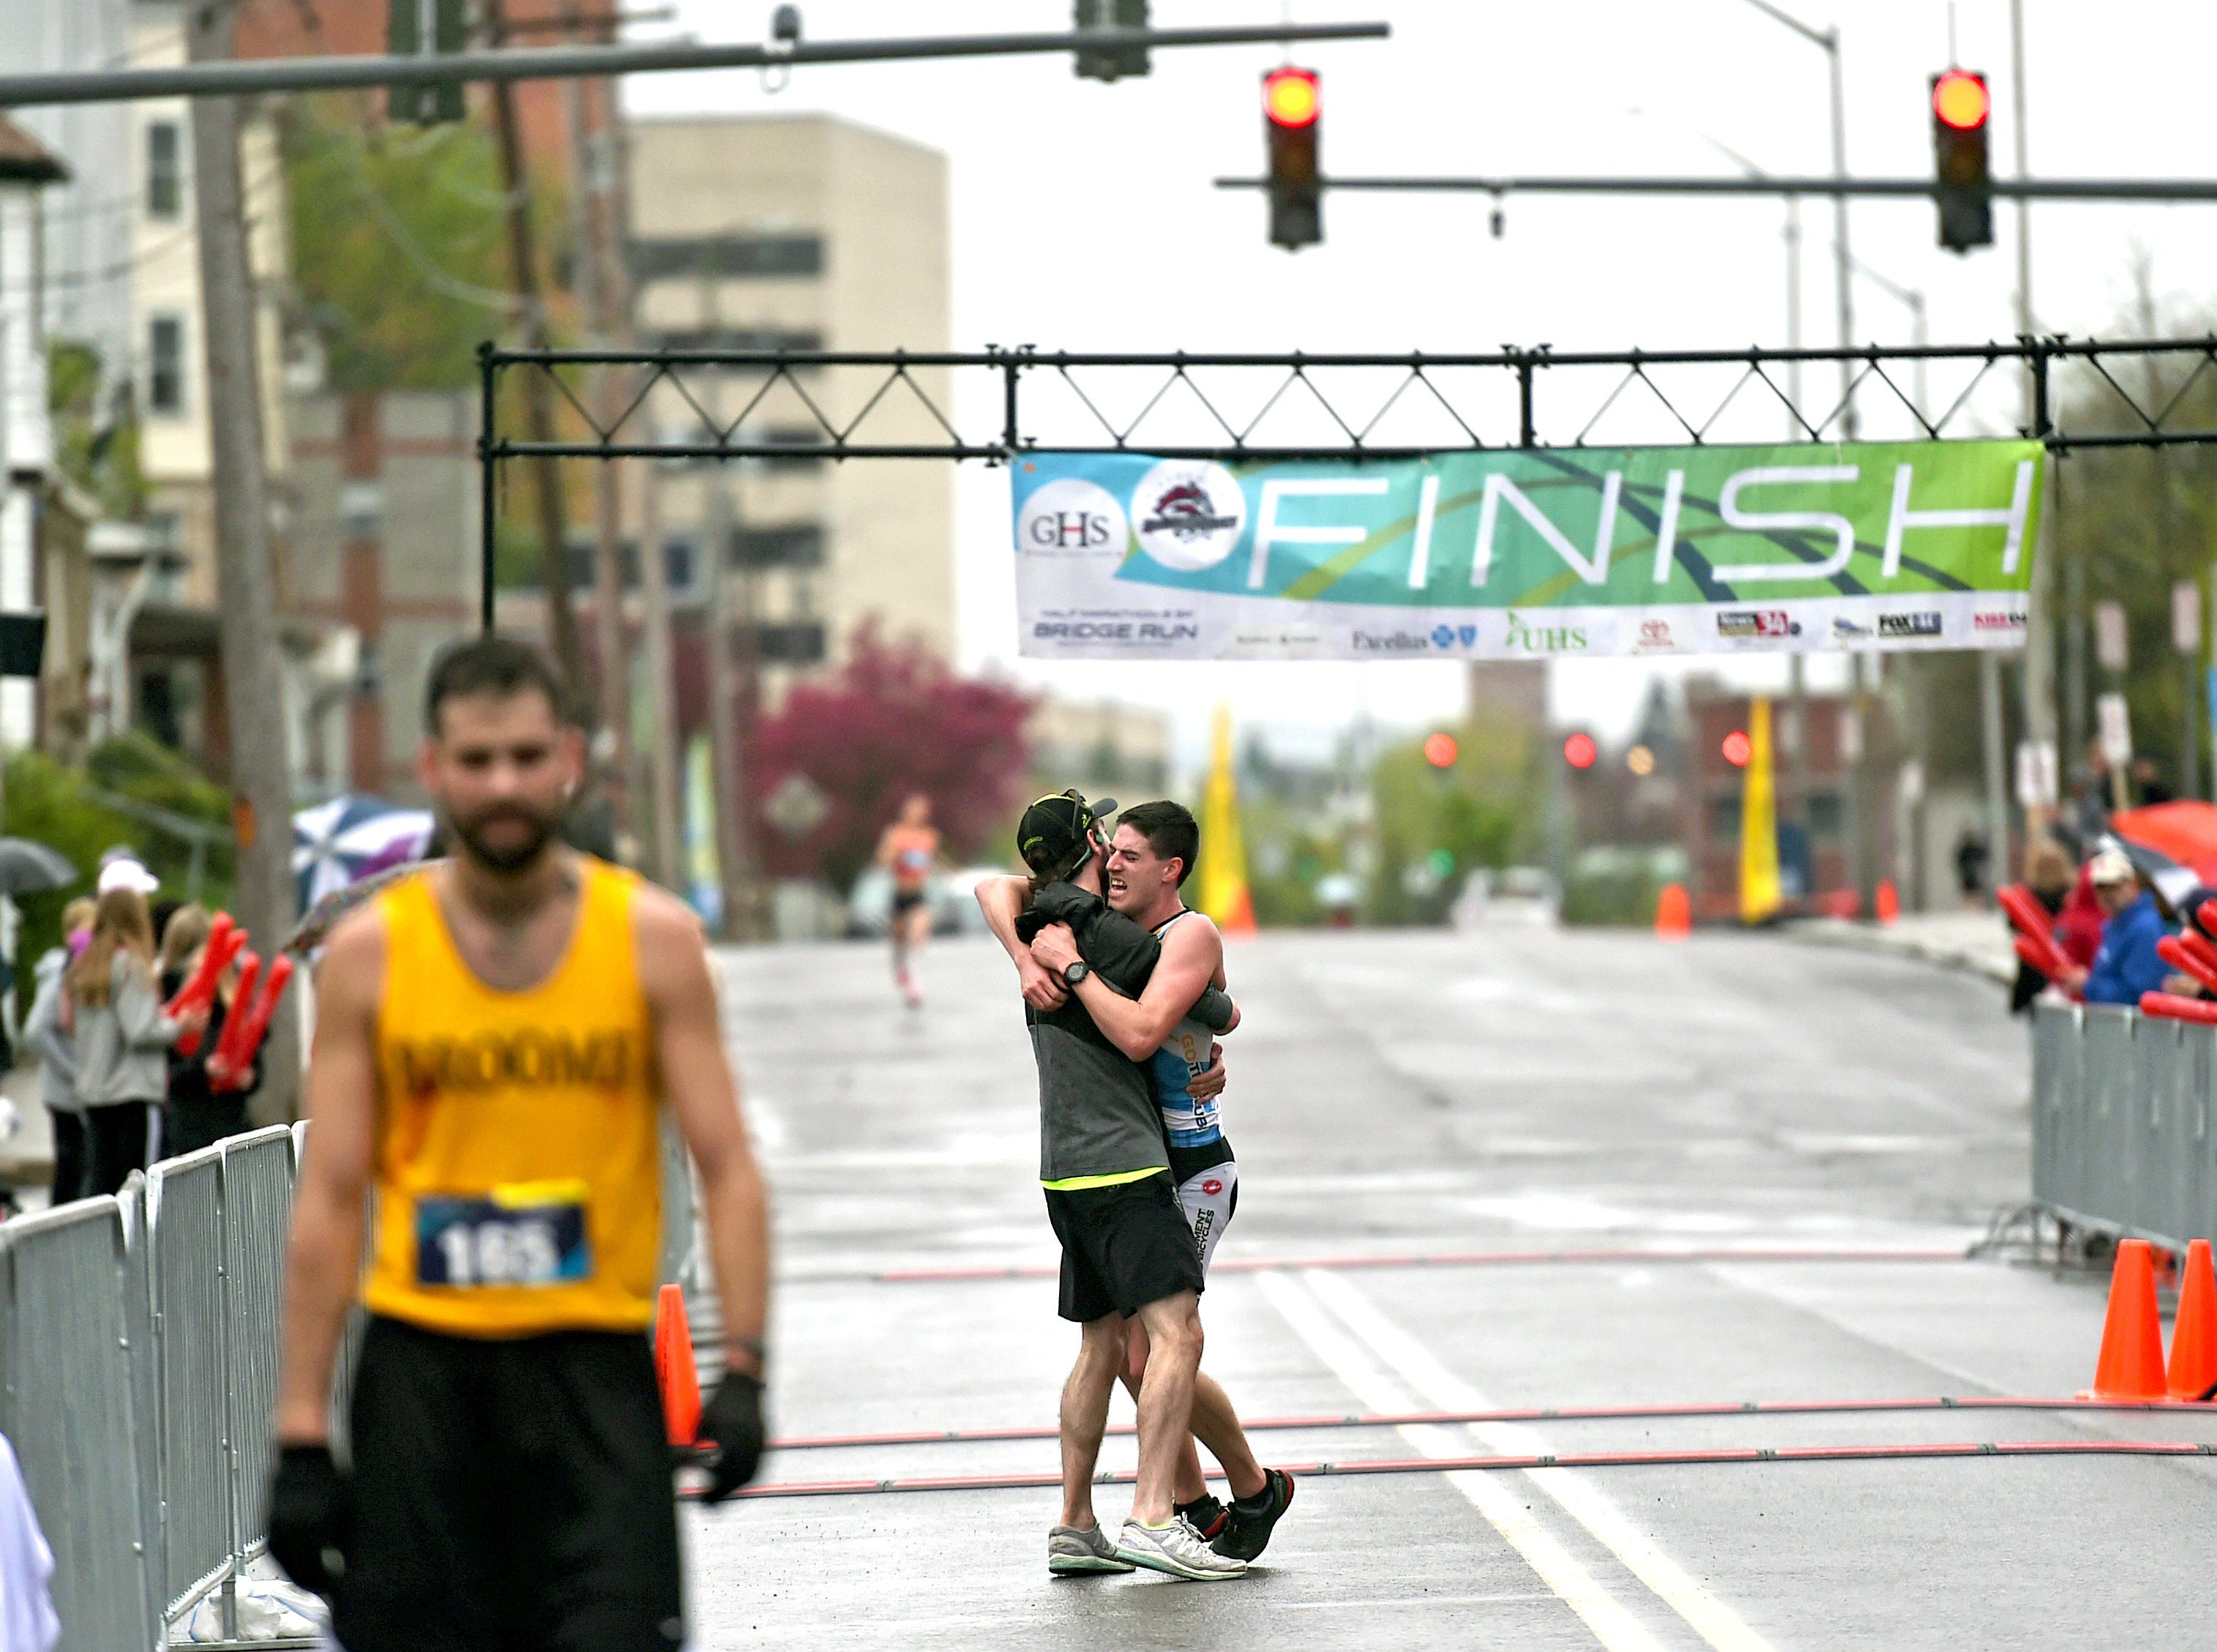 Ryan Brizzolara of Maine is greeted at the finishing line of the half marathon during the Greater Binghamton Bridge Run Half Marathon and 5K, Sunday, May 5, 2019.